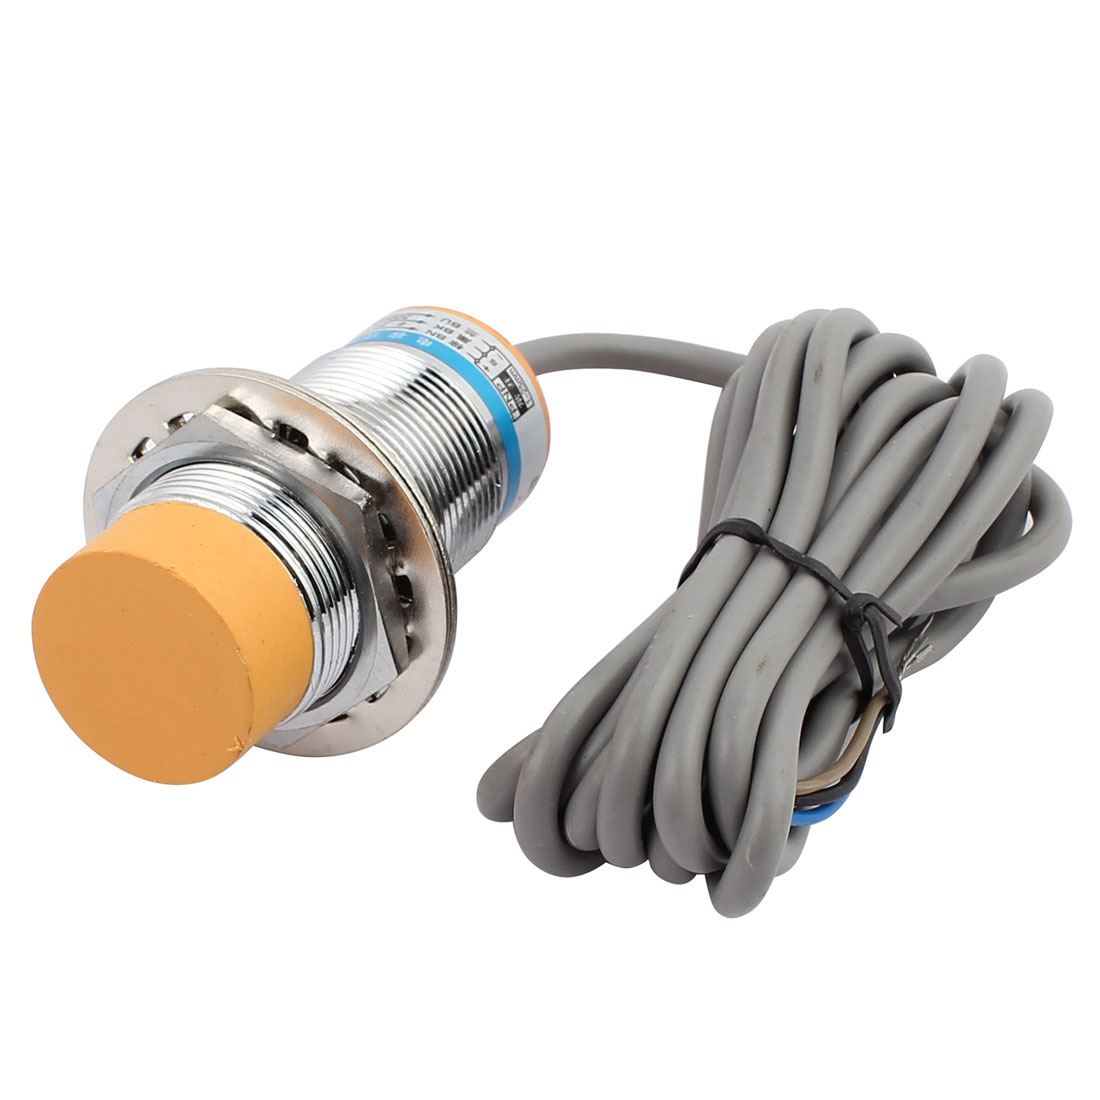 LJC30A3-H-Z/BY DC 6-36V 300mA PNP NO 25mm Inductive Proximity Sensor Switch 3-wire